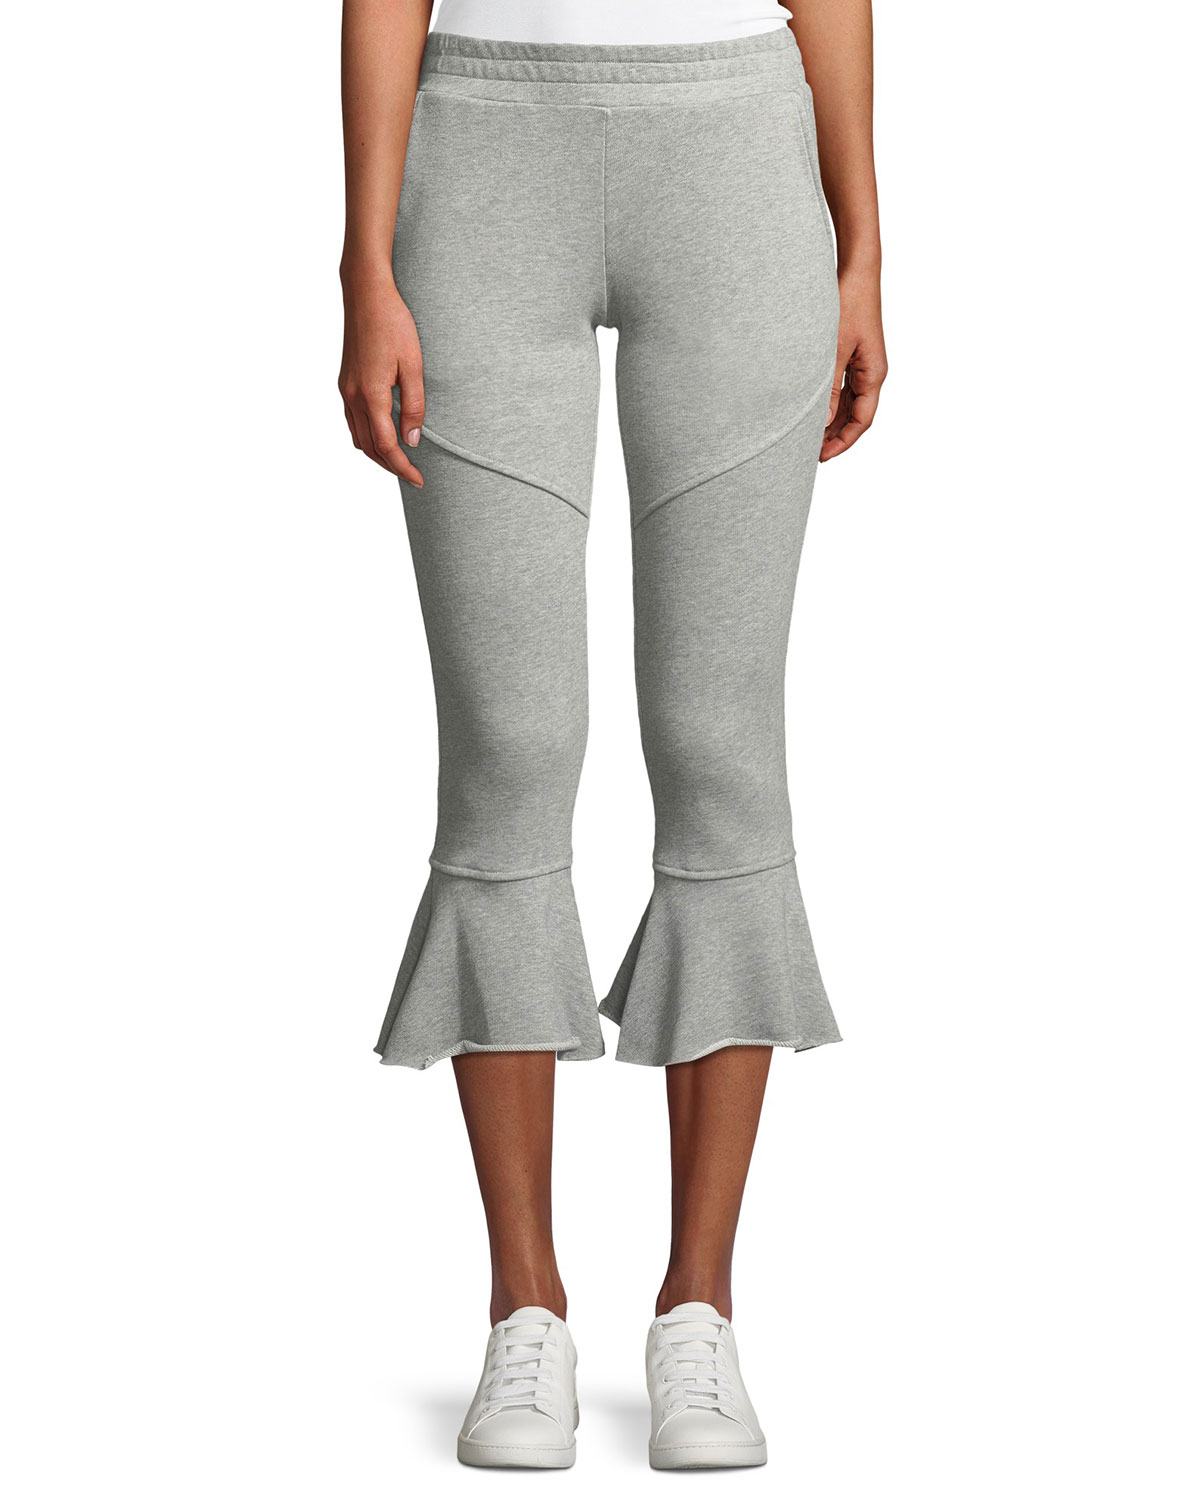 Veronica Cropped Flare-Leg Sweatpants